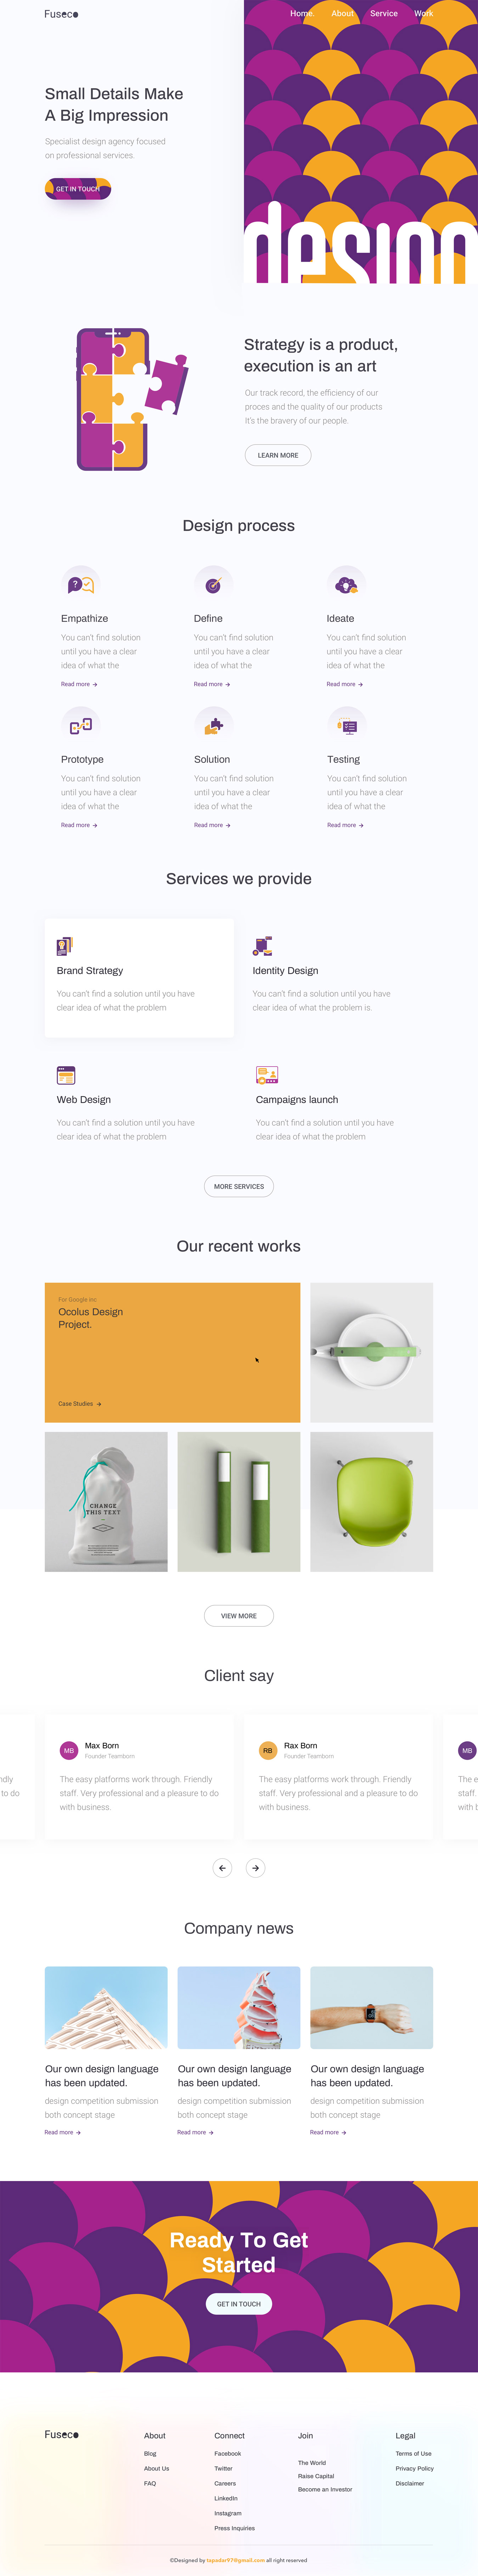 Design Agency Homepage